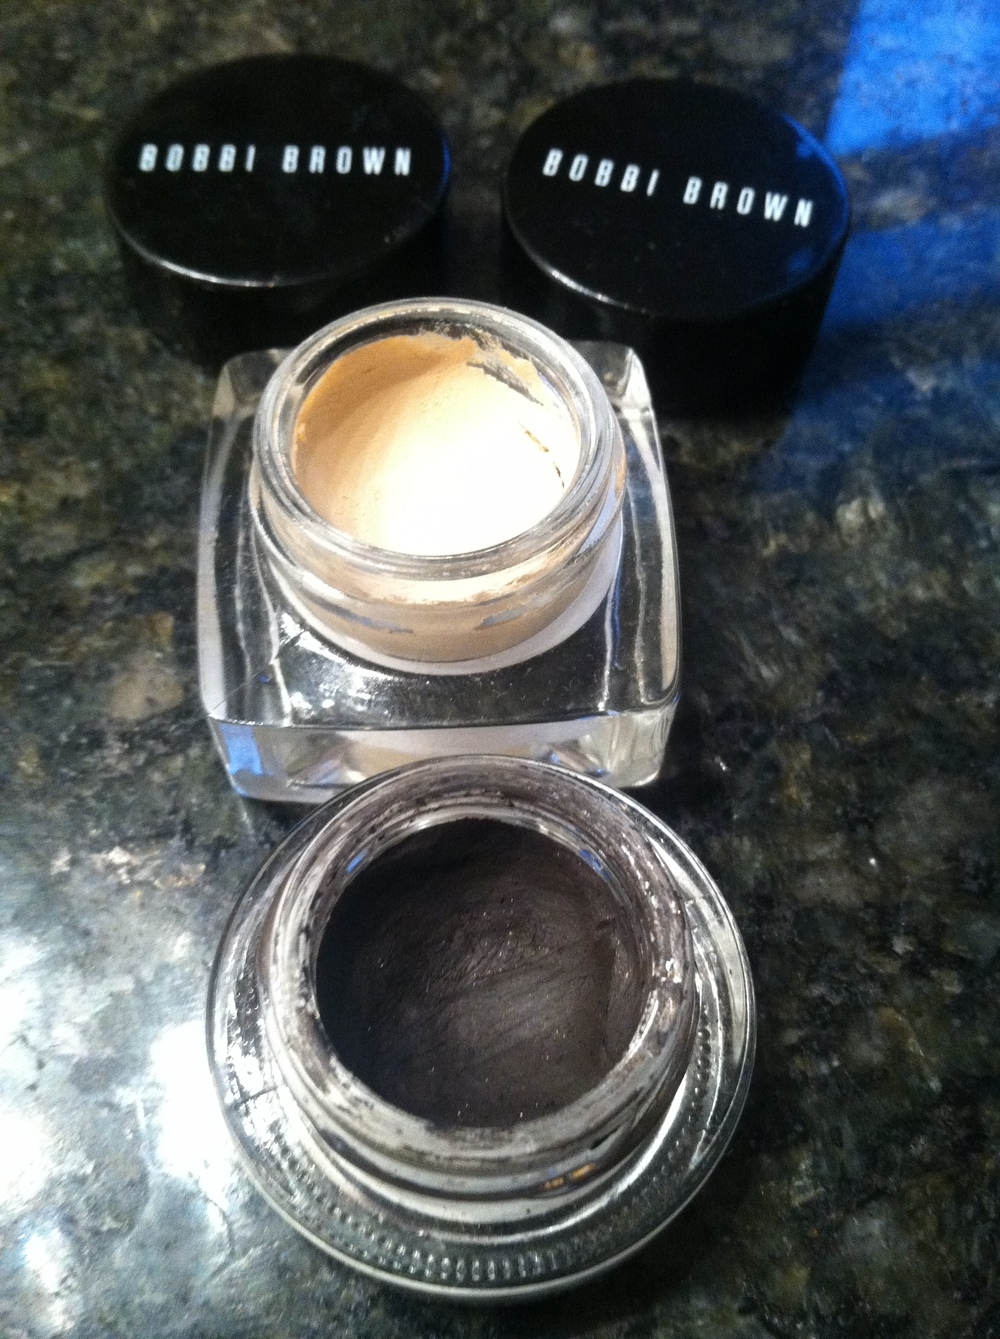 Long-wear cream shadow and gel liner, two indespensible products from Bobbi Brown.